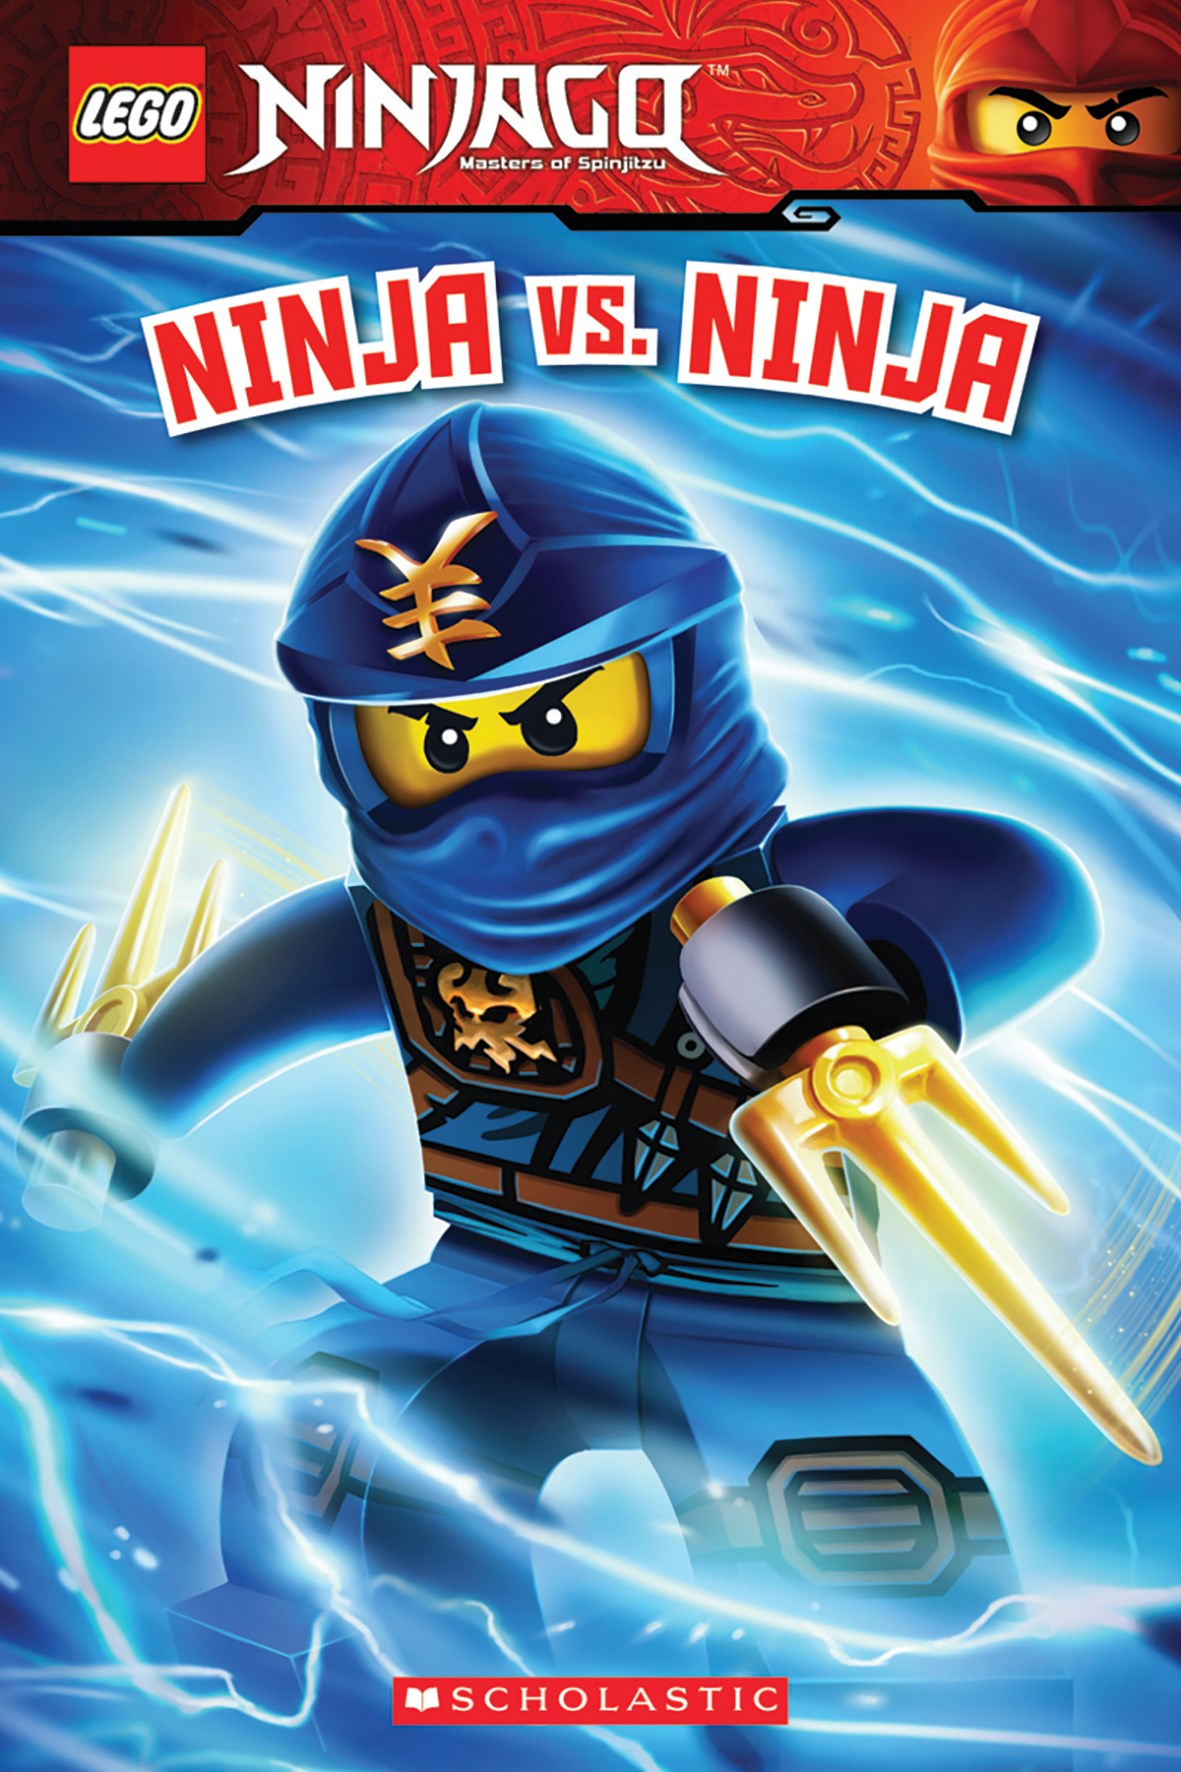 Lego Ninjago Reader #12: Ninja vs Ninja No Level